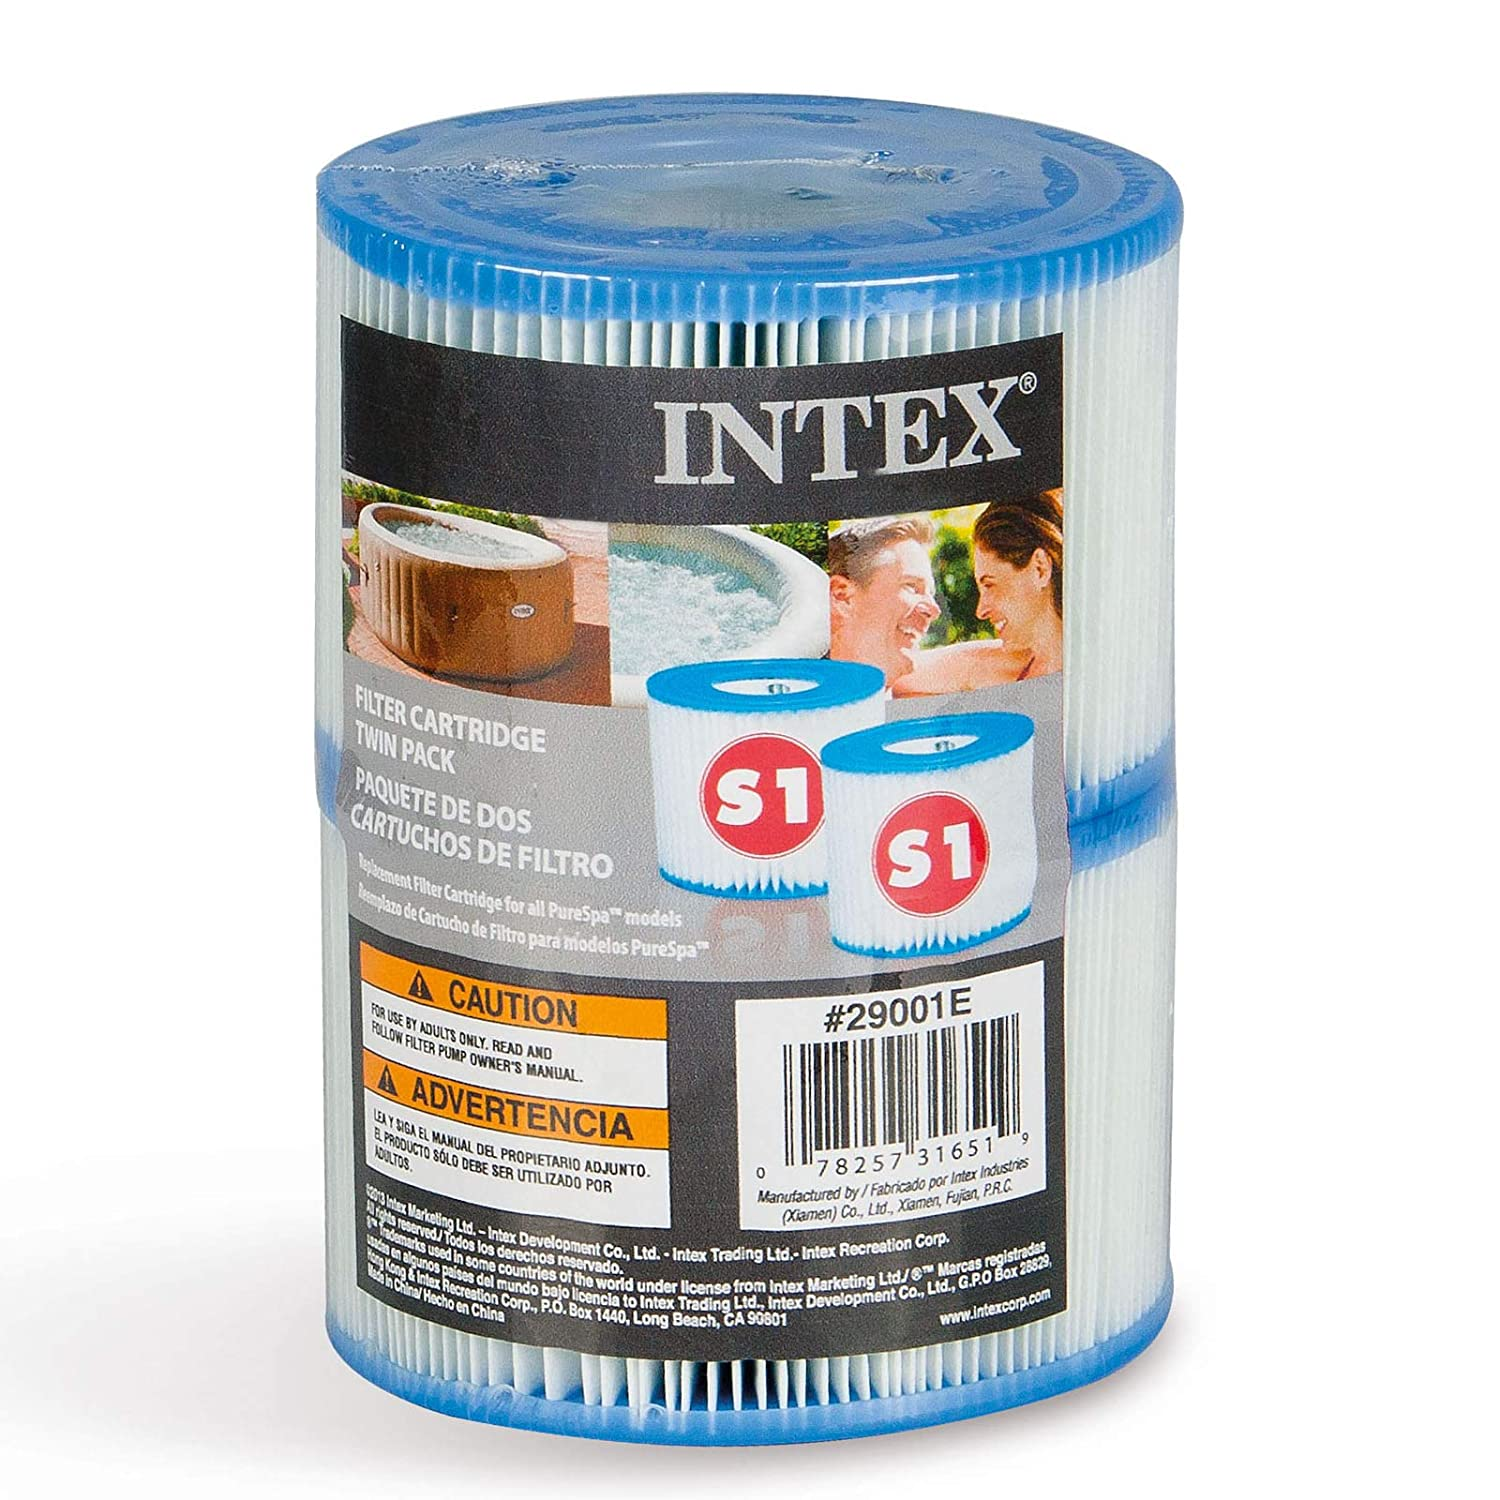 Intex Type S1 Filter Cartridge for PureSpa Twin Pack